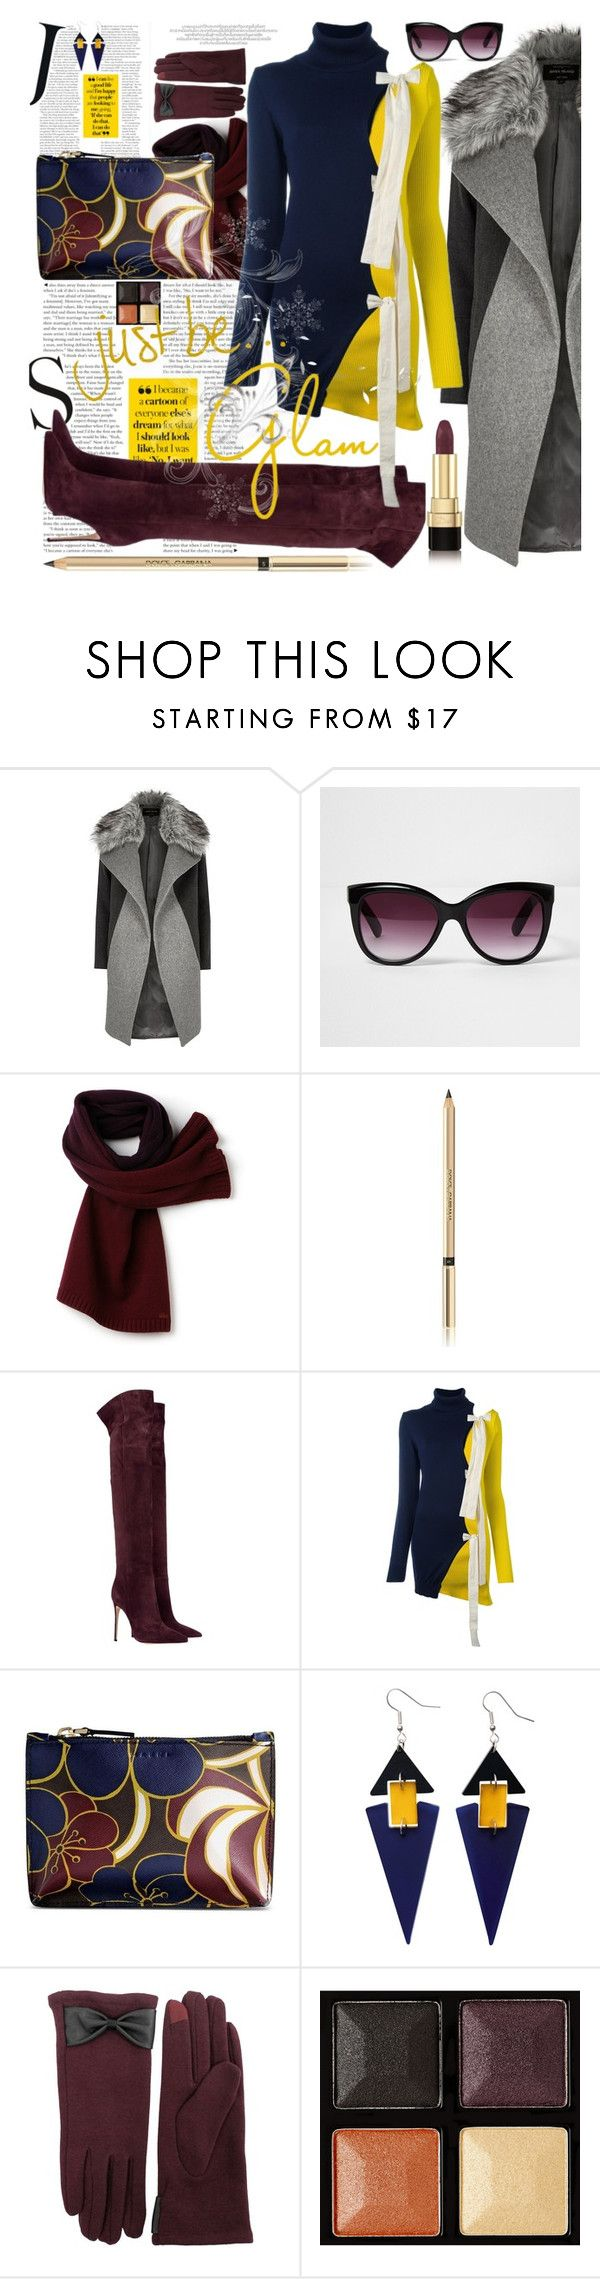 """Jacquemus Bow Detail Contrast Jumper"" by the-wardrobe-of-wishes on Polyvore featuring moda, River Island, Lacoste, Dolce&Gabbana, Jacquemus, Marni, Toolally, Fits e Givenchy"